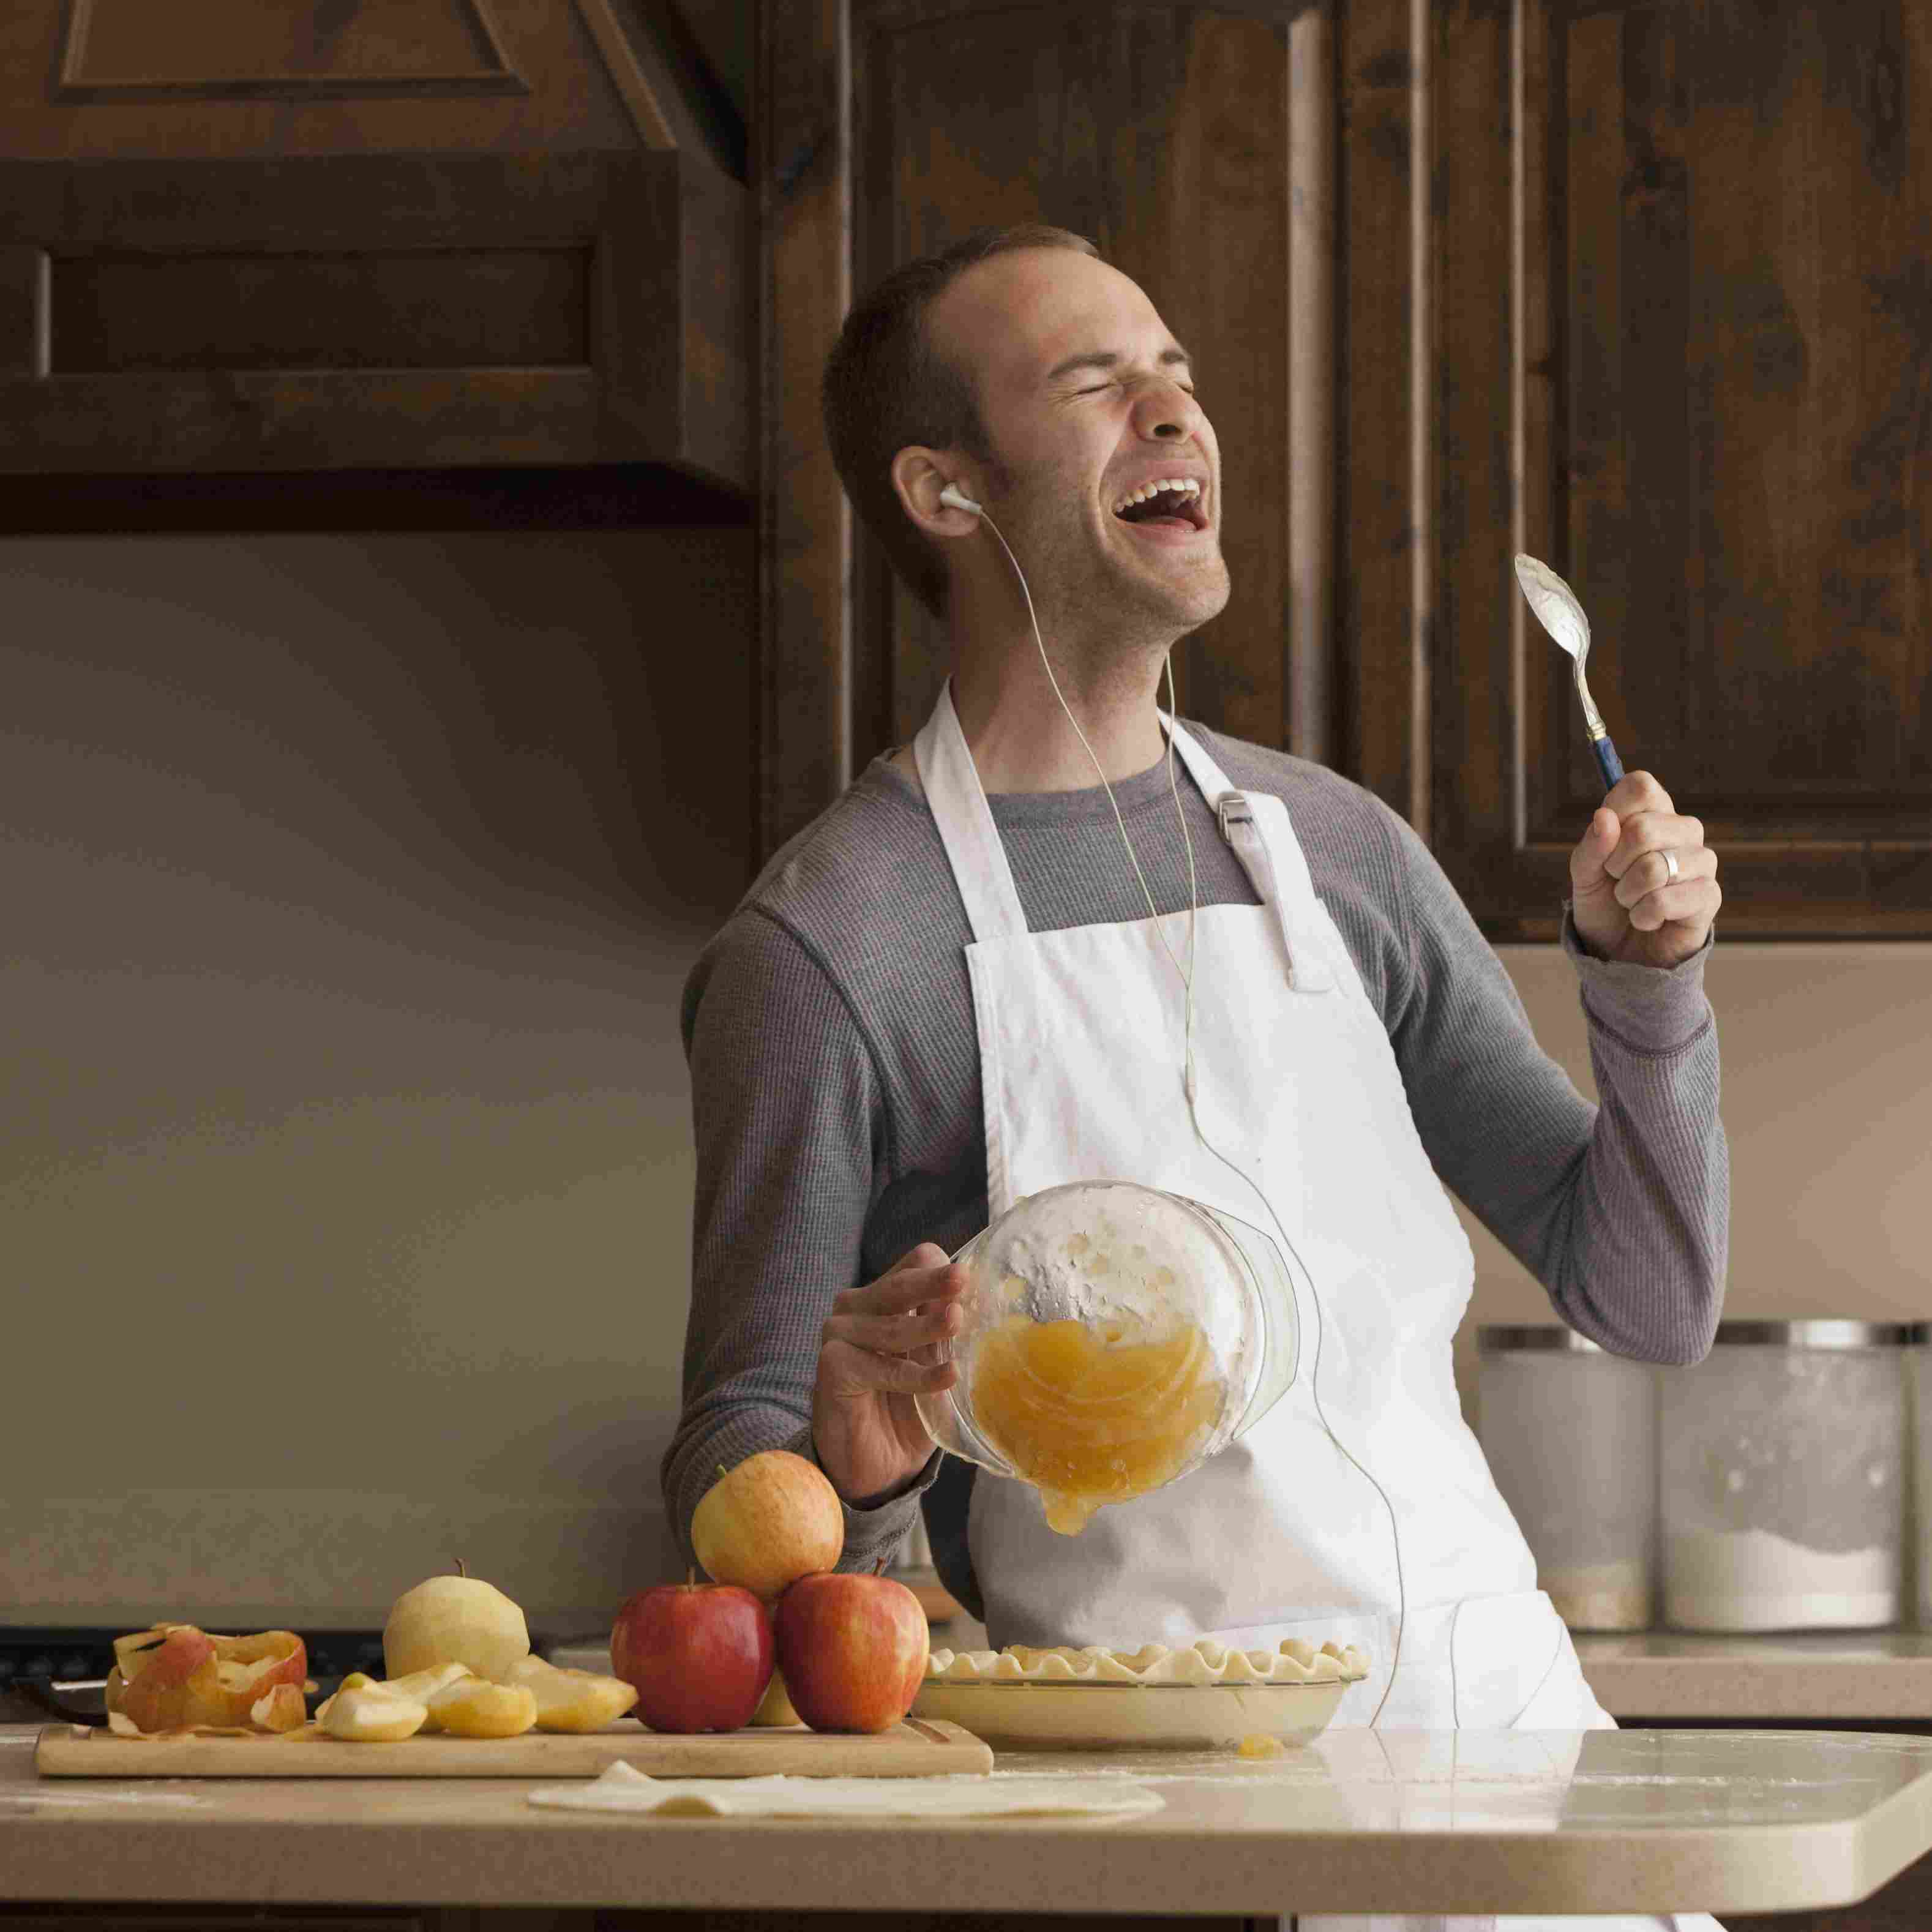 Your iPod can help you relieve stress in the kitchen.